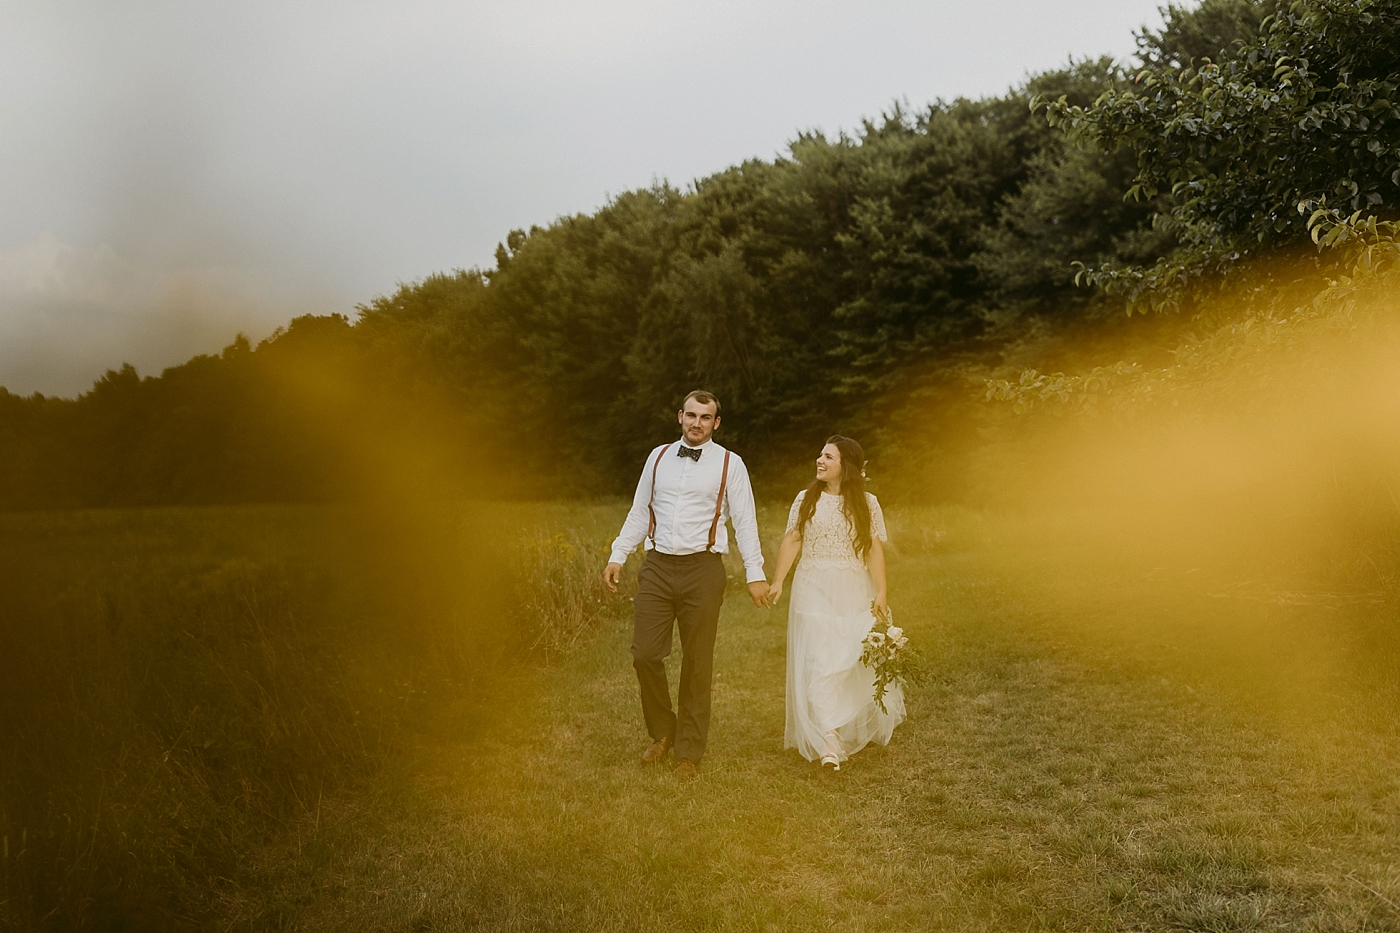 Meadow-Elopement-Ashley+Ben_MJPHOTO2018-239.jpg